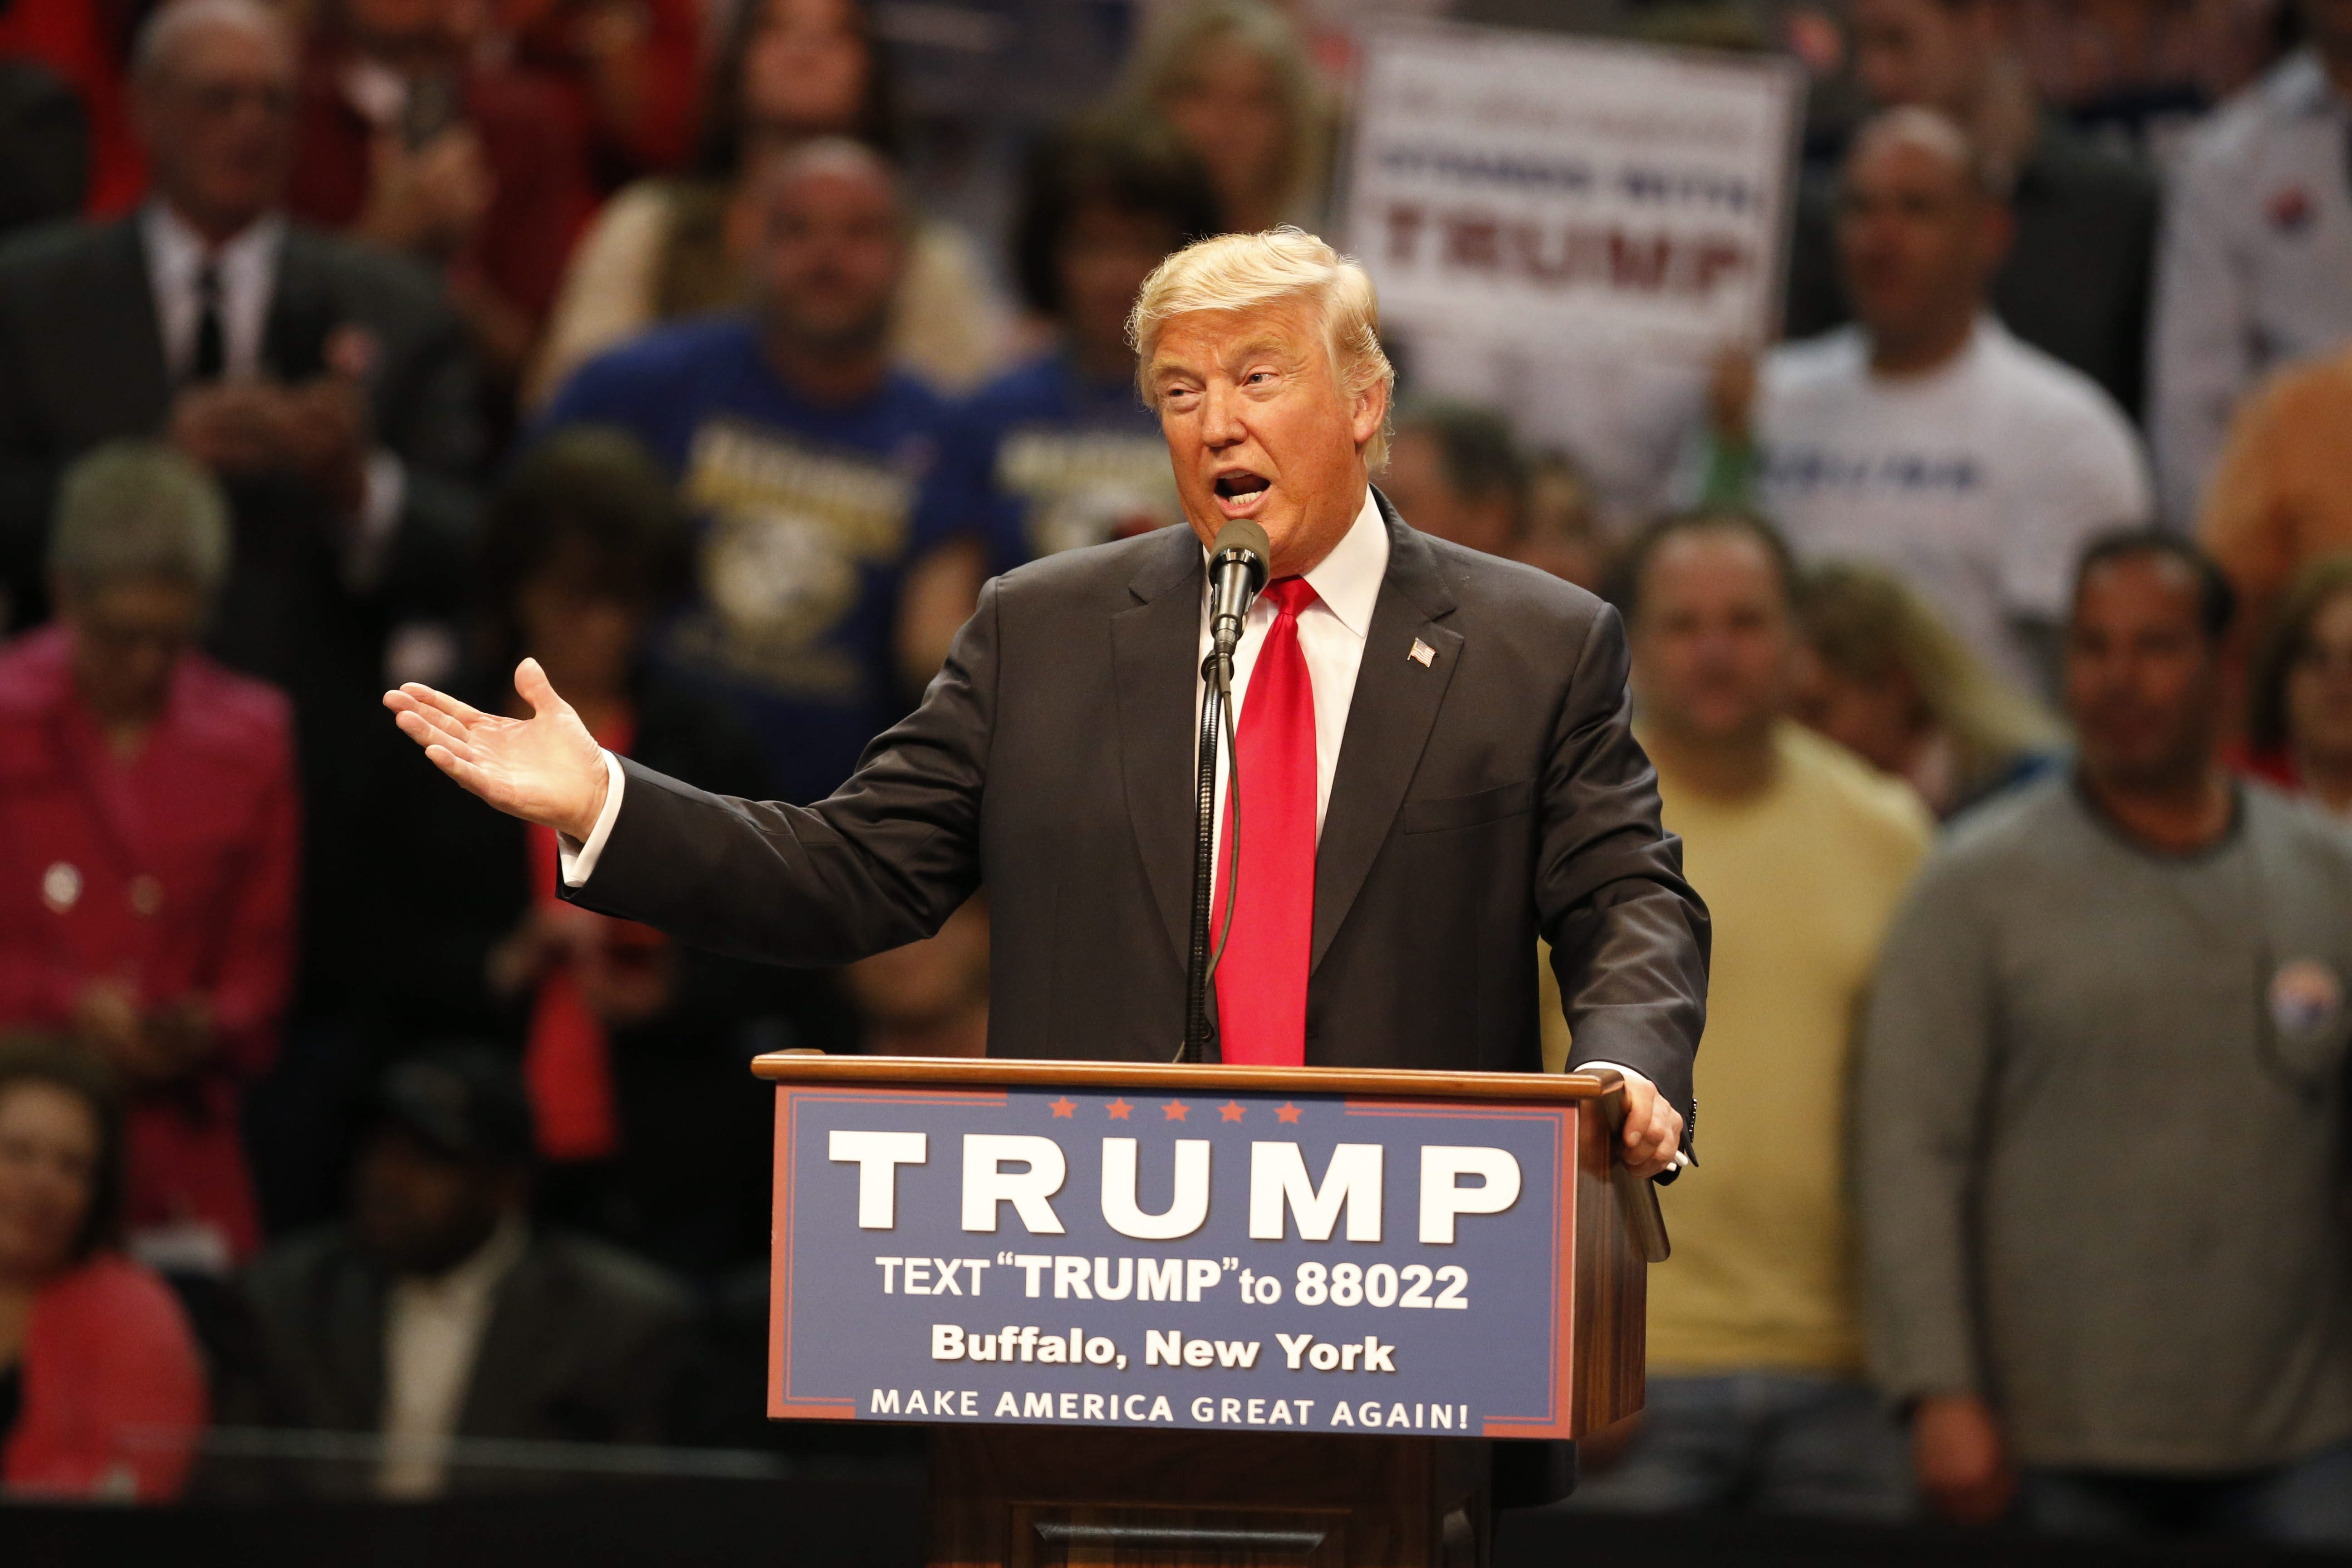 Donald Trump speaks during his stop at then-First Niagara Center in Buffalo on April 18, 2016.  (Derek Gee/News file photo)